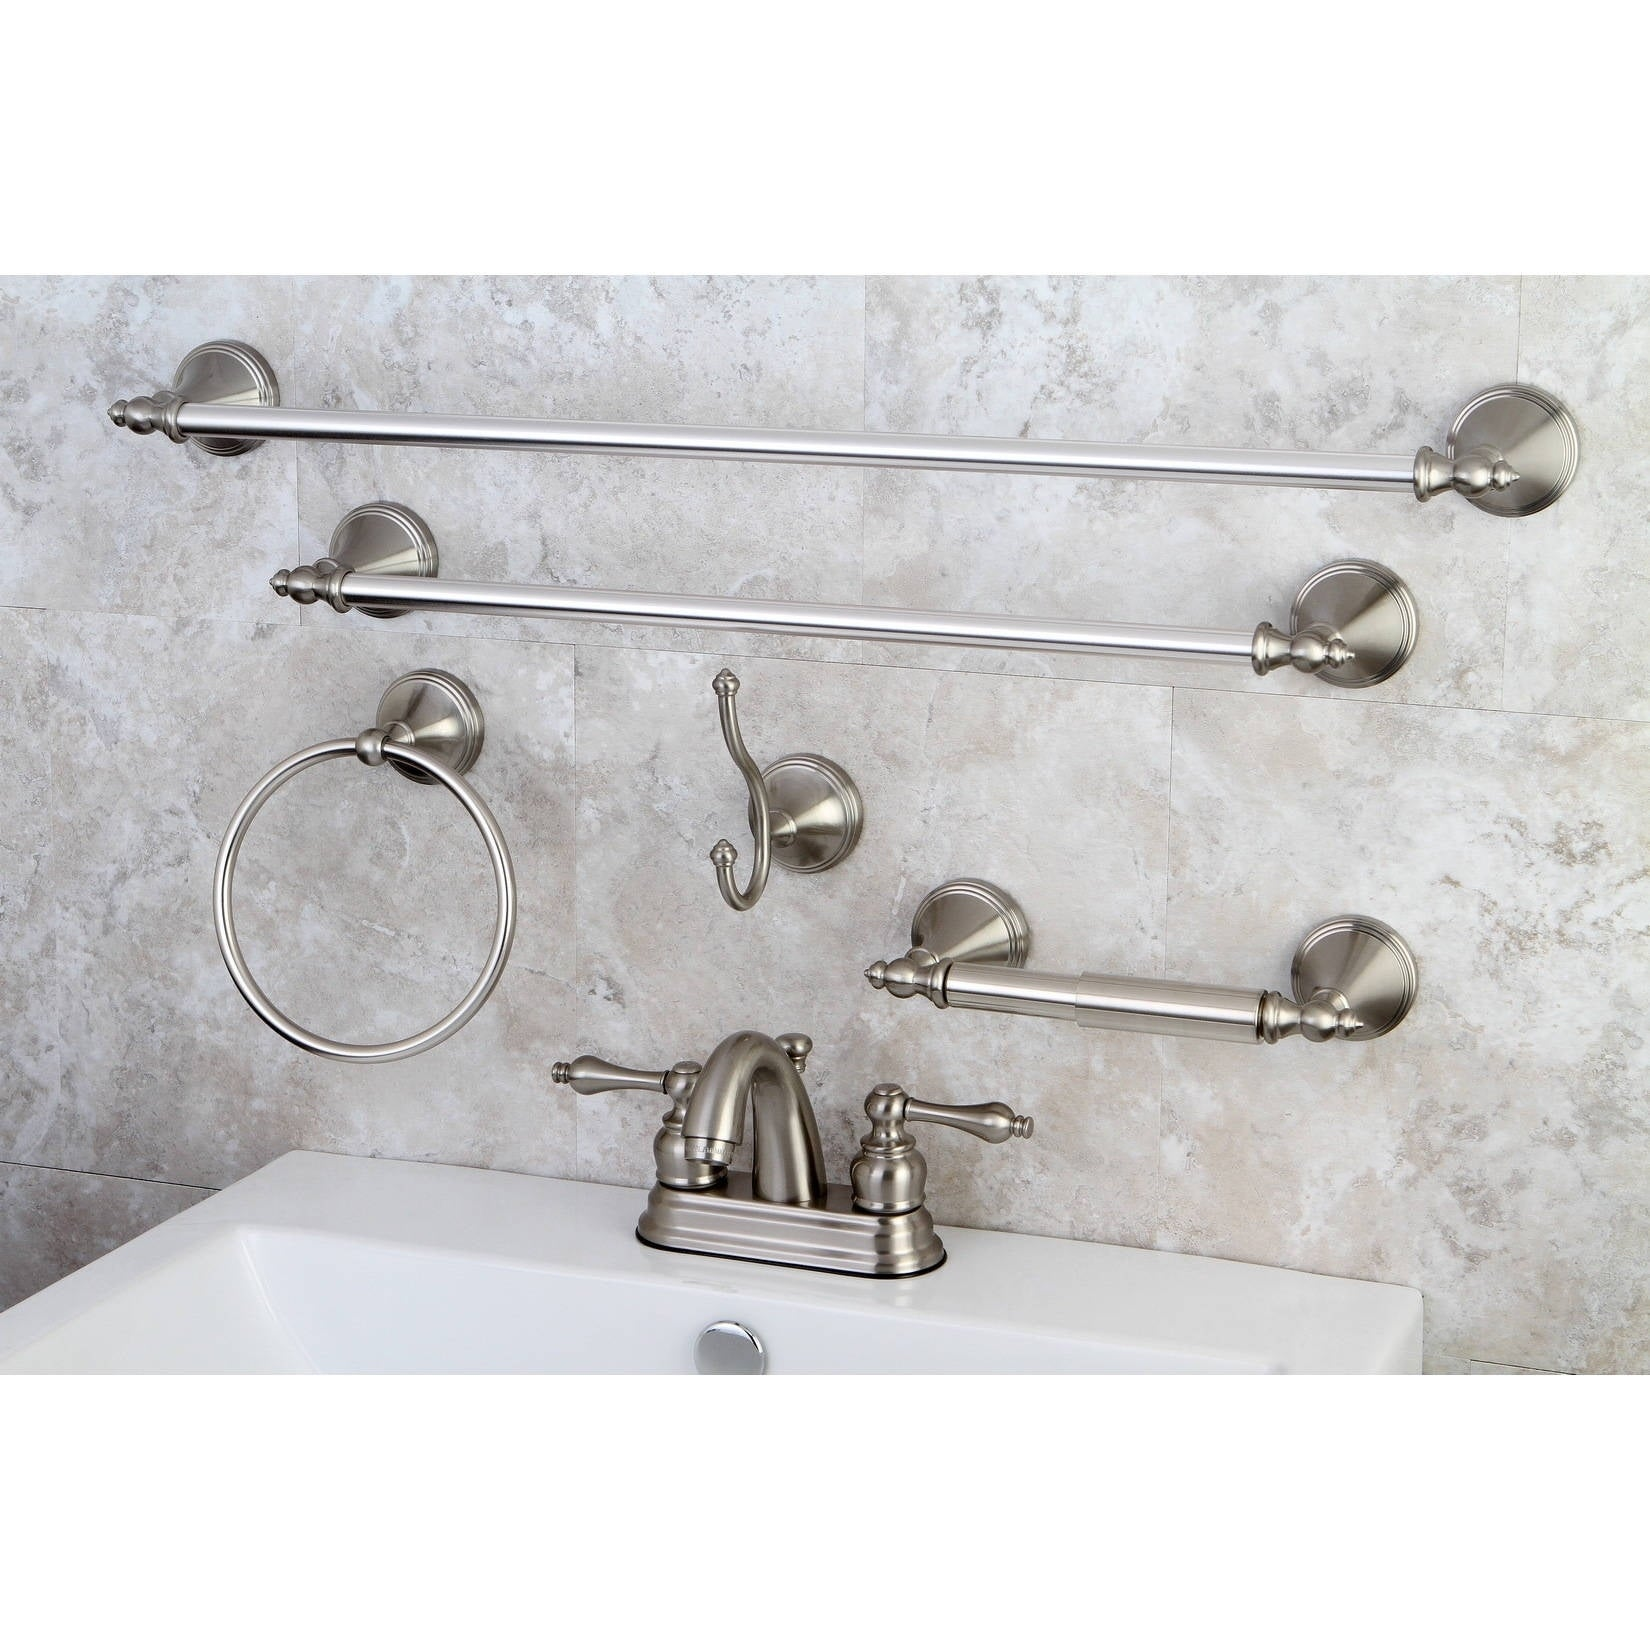 Towel Rack Bathroom Faucet